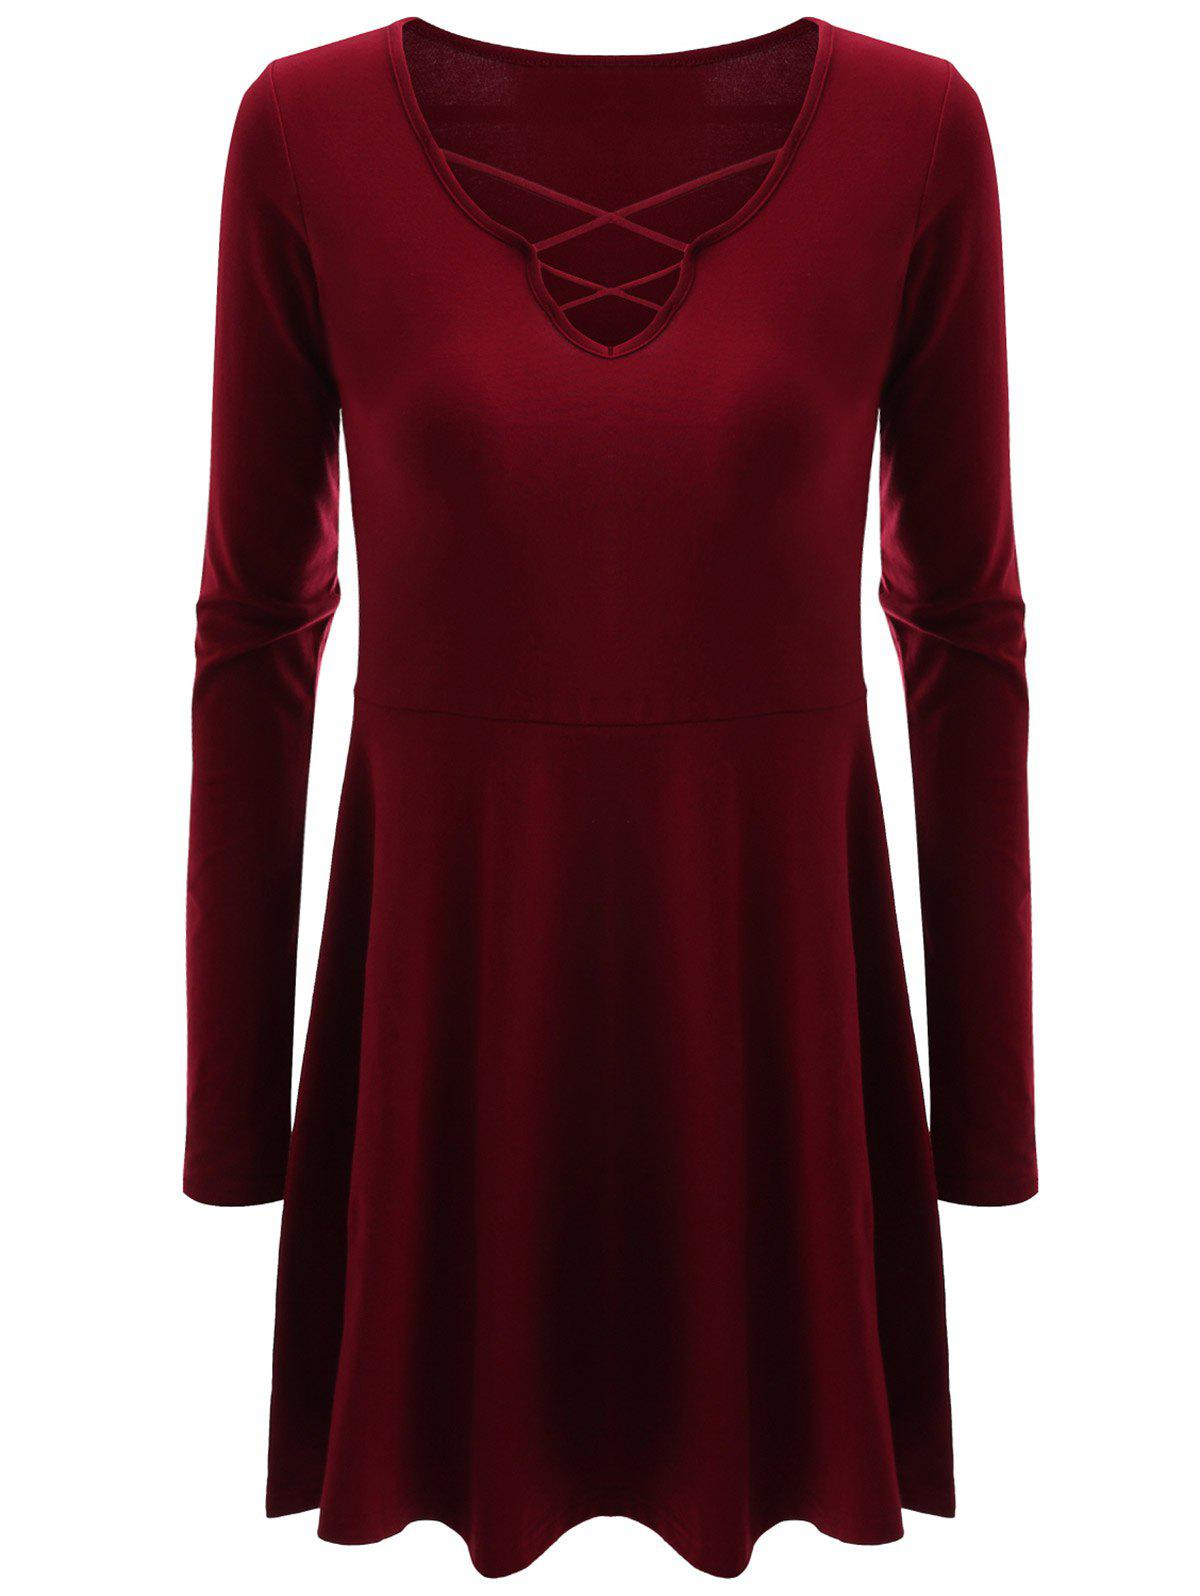 Criss Cross Skirted Plus Size Tee - WINE RED 2XL